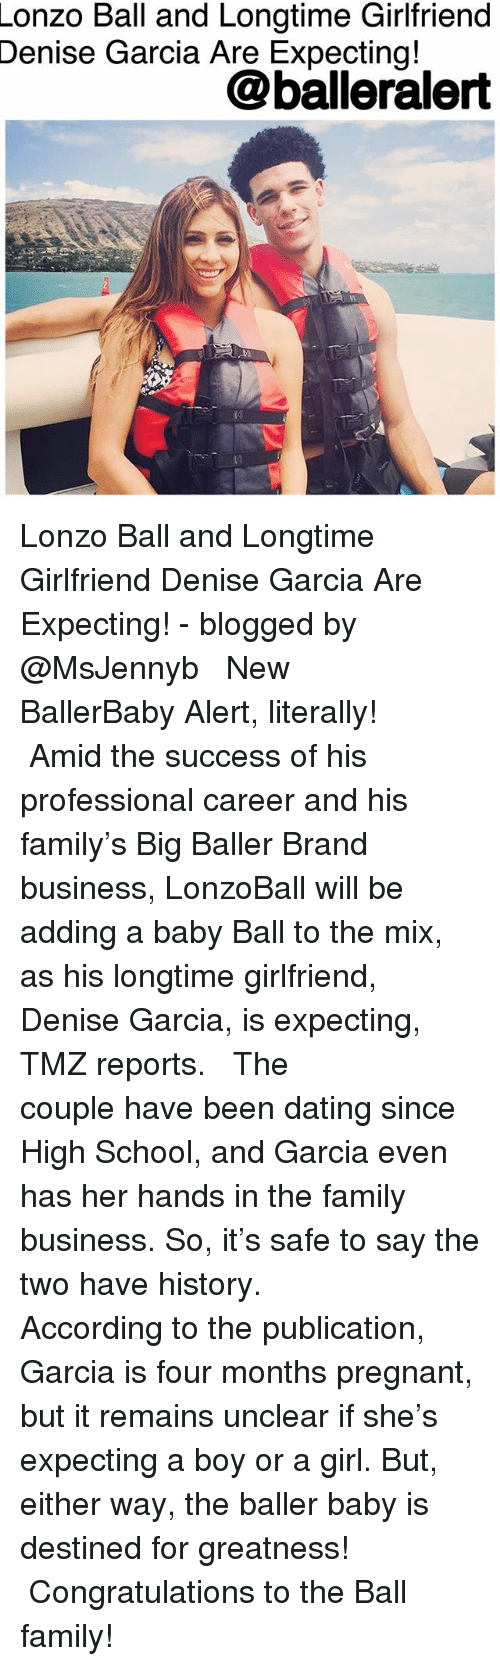 Denise: Lonzo  Ball and Longtime Girlfriend  Garcia Are Expecting!  Denise  @balleralert Lonzo Ball and Longtime Girlfriend Denise Garcia Are Expecting! - blogged by @MsJennyb ⠀⠀⠀⠀⠀⠀⠀ ⠀⠀⠀⠀⠀⠀⠀ New BallerBaby Alert, literally! ⠀⠀⠀⠀⠀⠀⠀ ⠀⠀⠀⠀⠀⠀⠀ Amid the success of his professional career and his family's Big Baller Brand business, LonzoBall will be adding a baby Ball to the mix, as his longtime girlfriend, Denise Garcia, is expecting, TMZ reports. ⠀⠀⠀⠀⠀⠀⠀ ⠀⠀⠀⠀⠀⠀⠀ The couple have been dating since High School, and Garcia even has her hands in the family business. So, it's safe to say the two have history. ⠀⠀⠀⠀⠀⠀⠀ ⠀⠀⠀⠀⠀⠀⠀ According to the publication, Garcia is four months pregnant, but it remains unclear if she's expecting a boy or a girl. But, either way, the baller baby is destined for greatness! ⠀⠀⠀⠀⠀⠀⠀ ⠀⠀⠀⠀⠀⠀⠀ Congratulations to the Ball family!